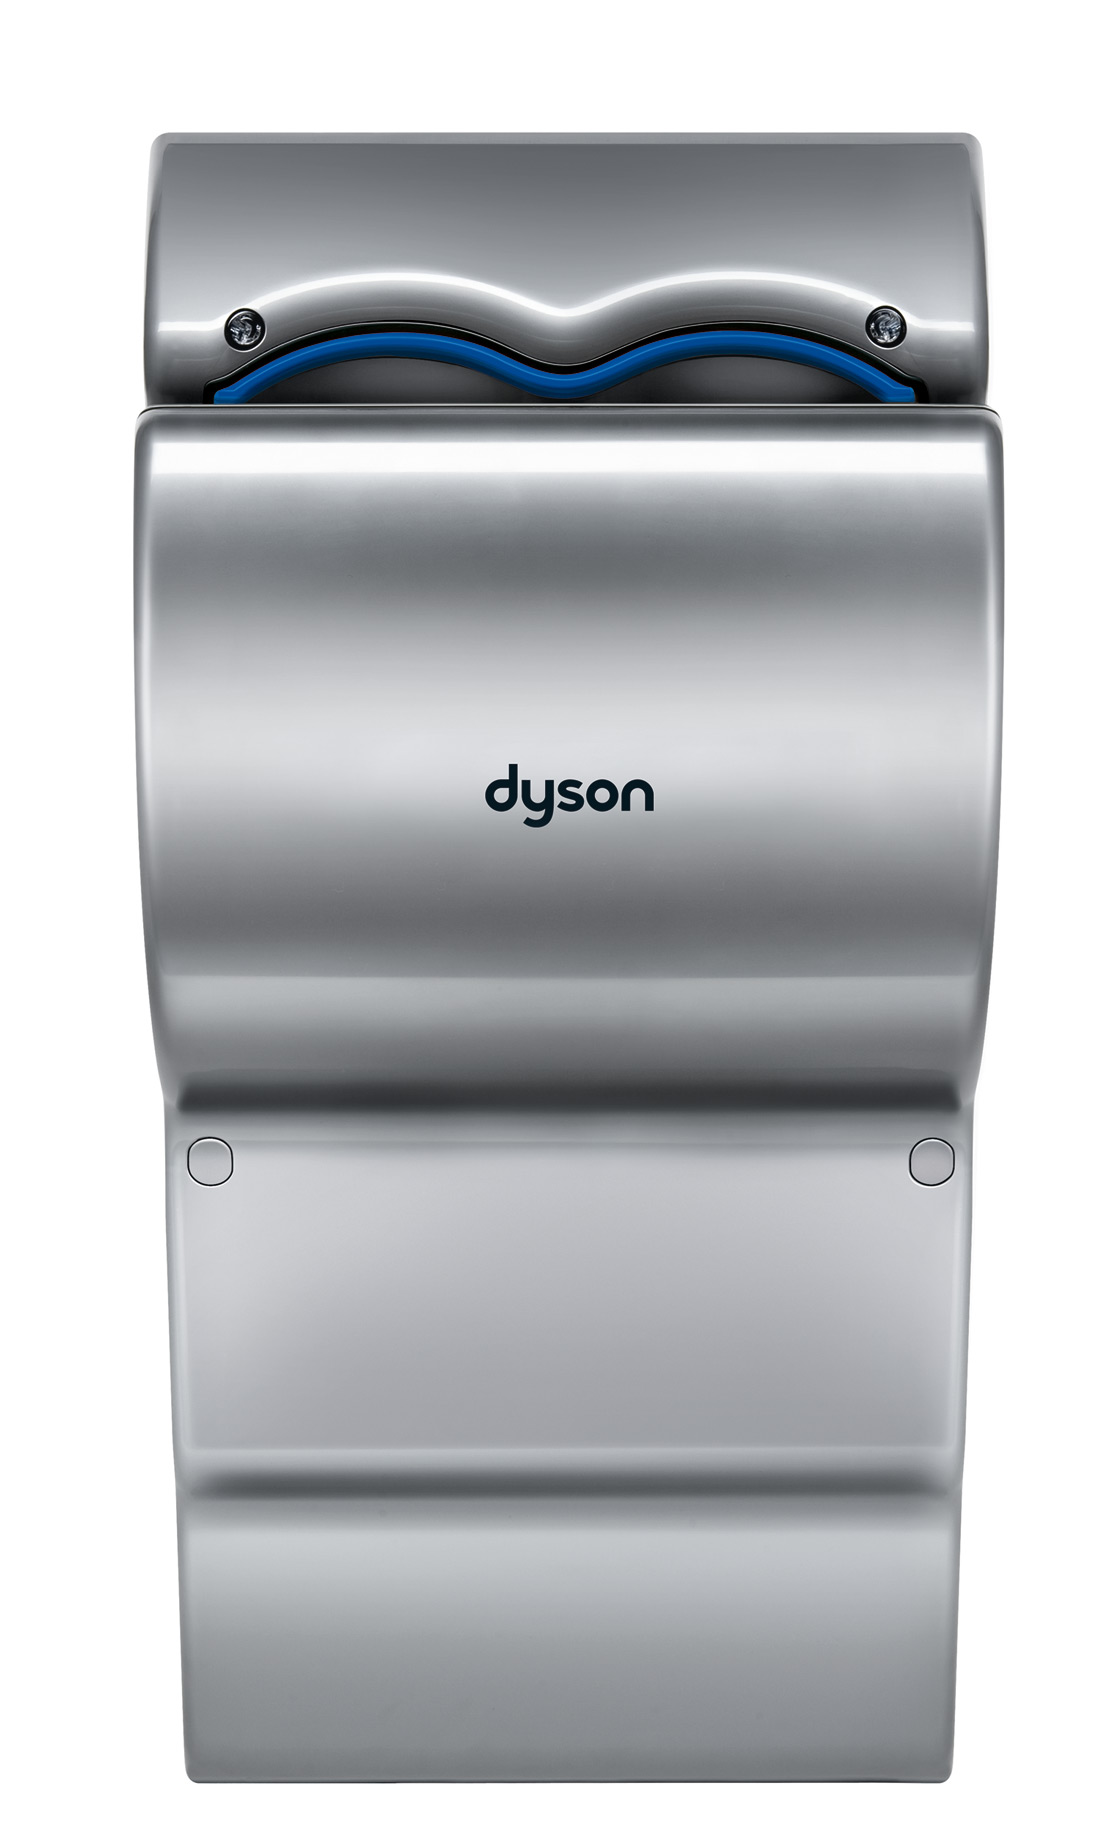 airport suppliers dyson airblade hand dryer dyson. Black Bedroom Furniture Sets. Home Design Ideas